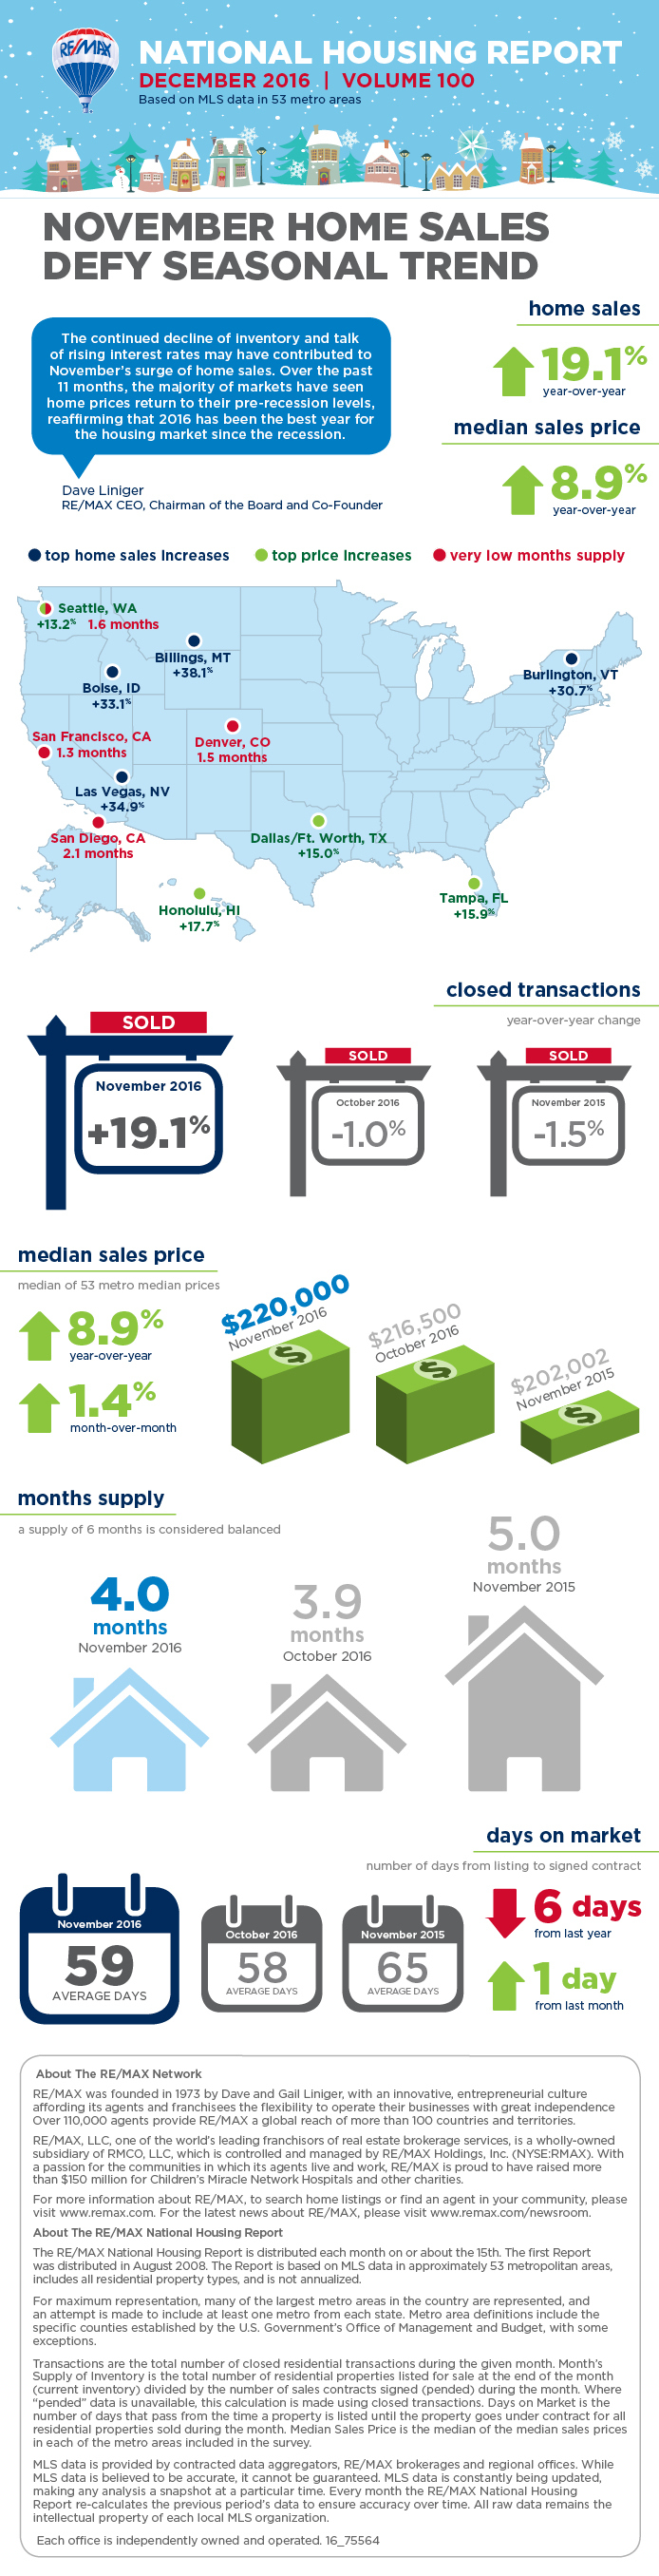 RE/MAX National Housing Report December 2016